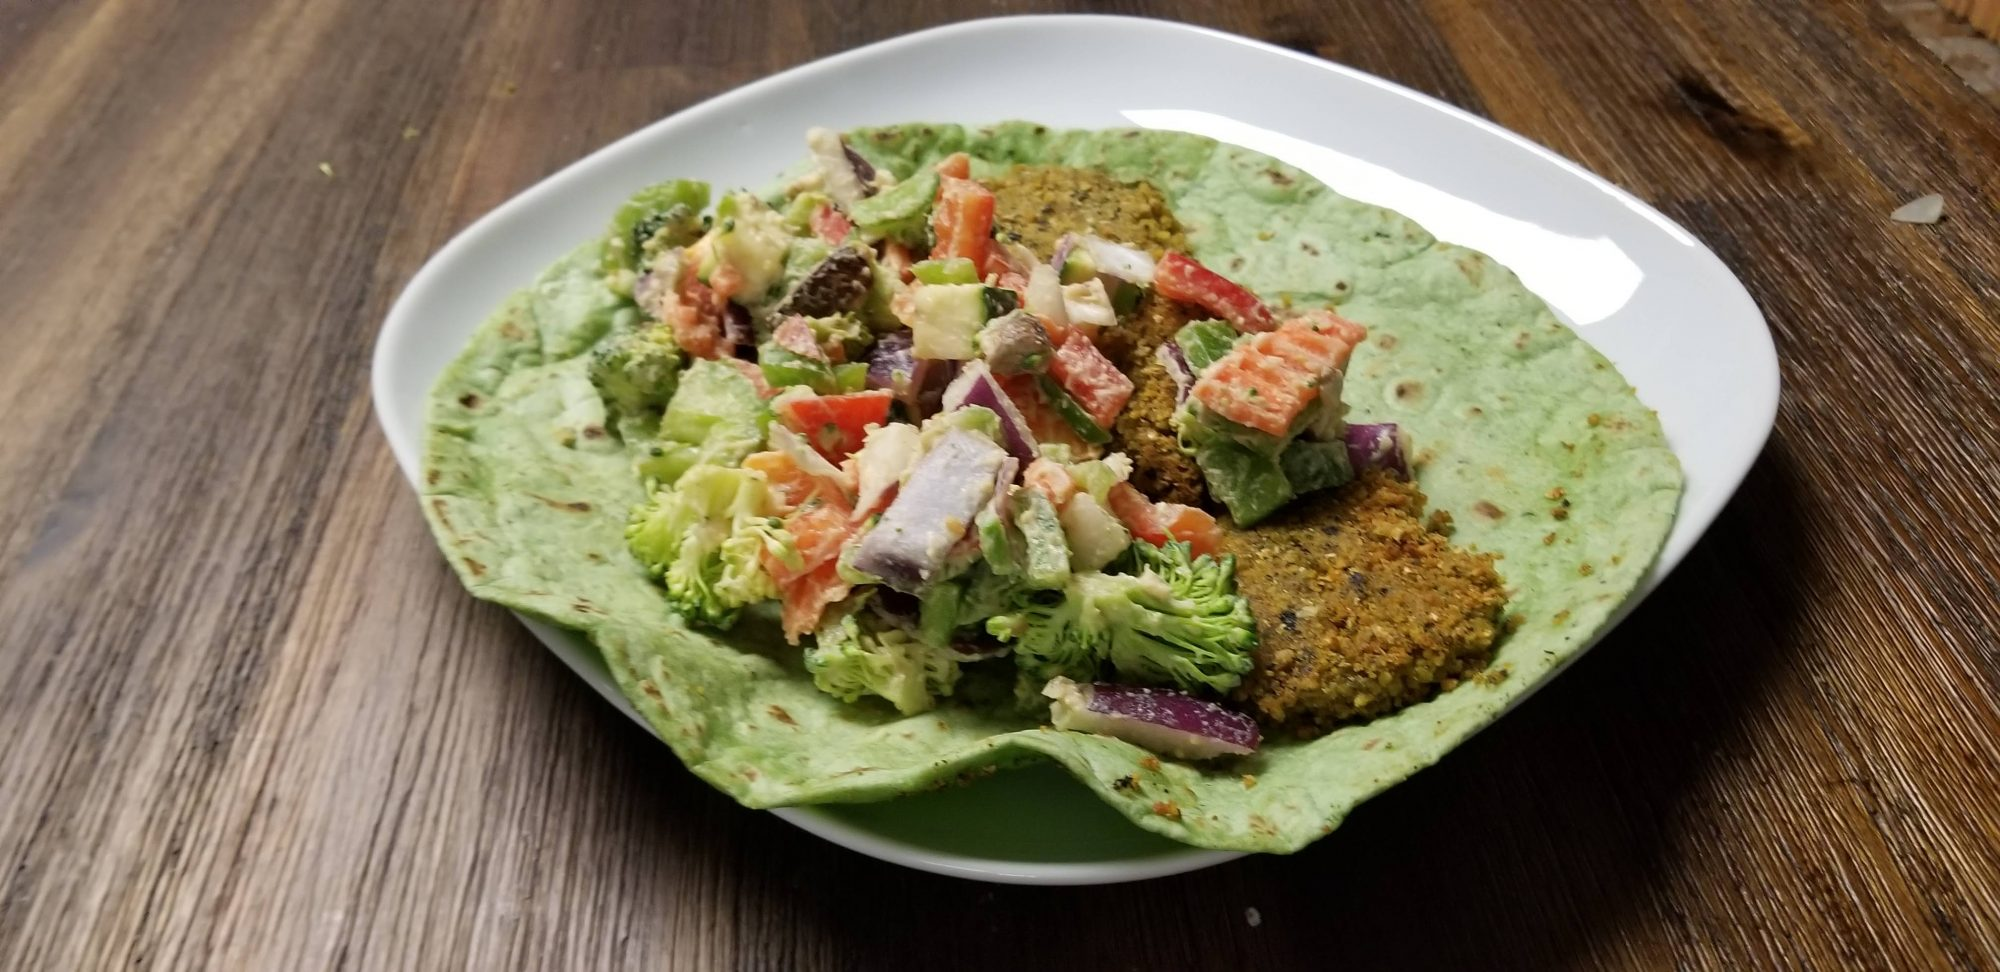 vegan falafel wrap with diced vegetables and hummus